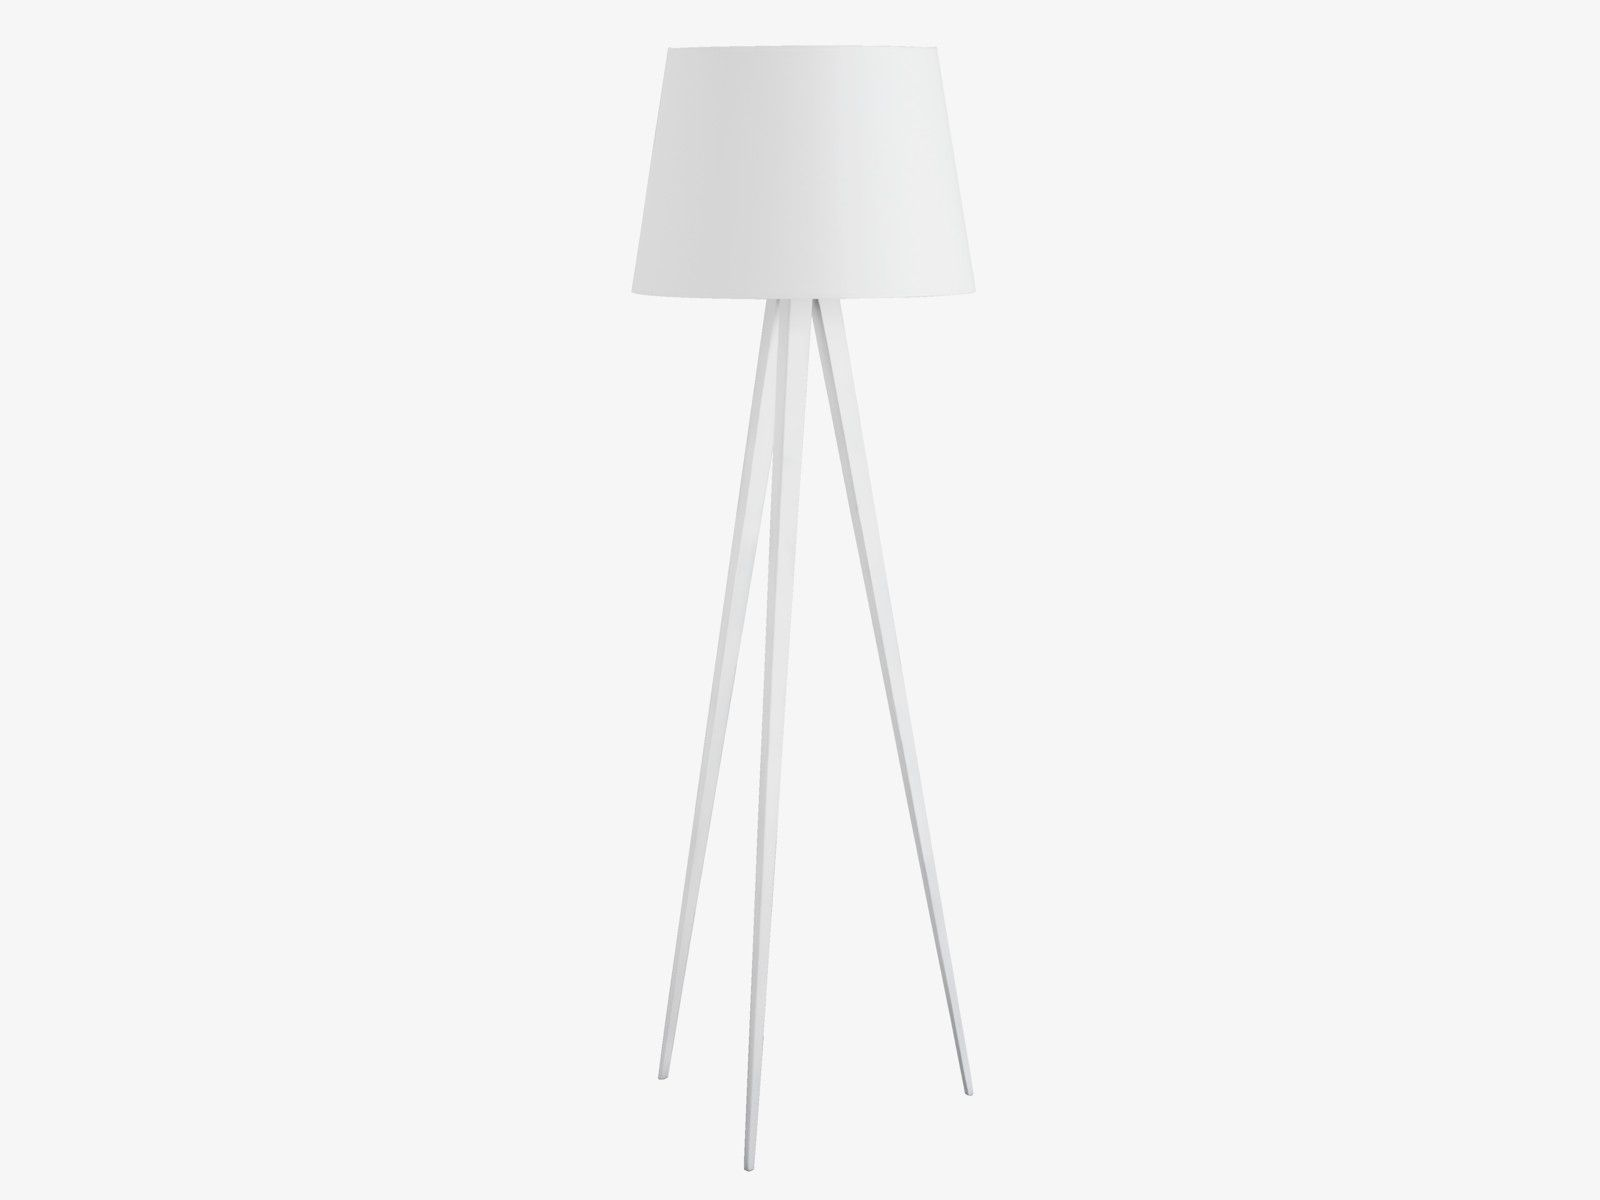 Yves Whites Metal White Tripod Floor Lamp Base Habitatuk White Tripod Floor Lamp Floor Lamp Base Tripod Floor Lamps